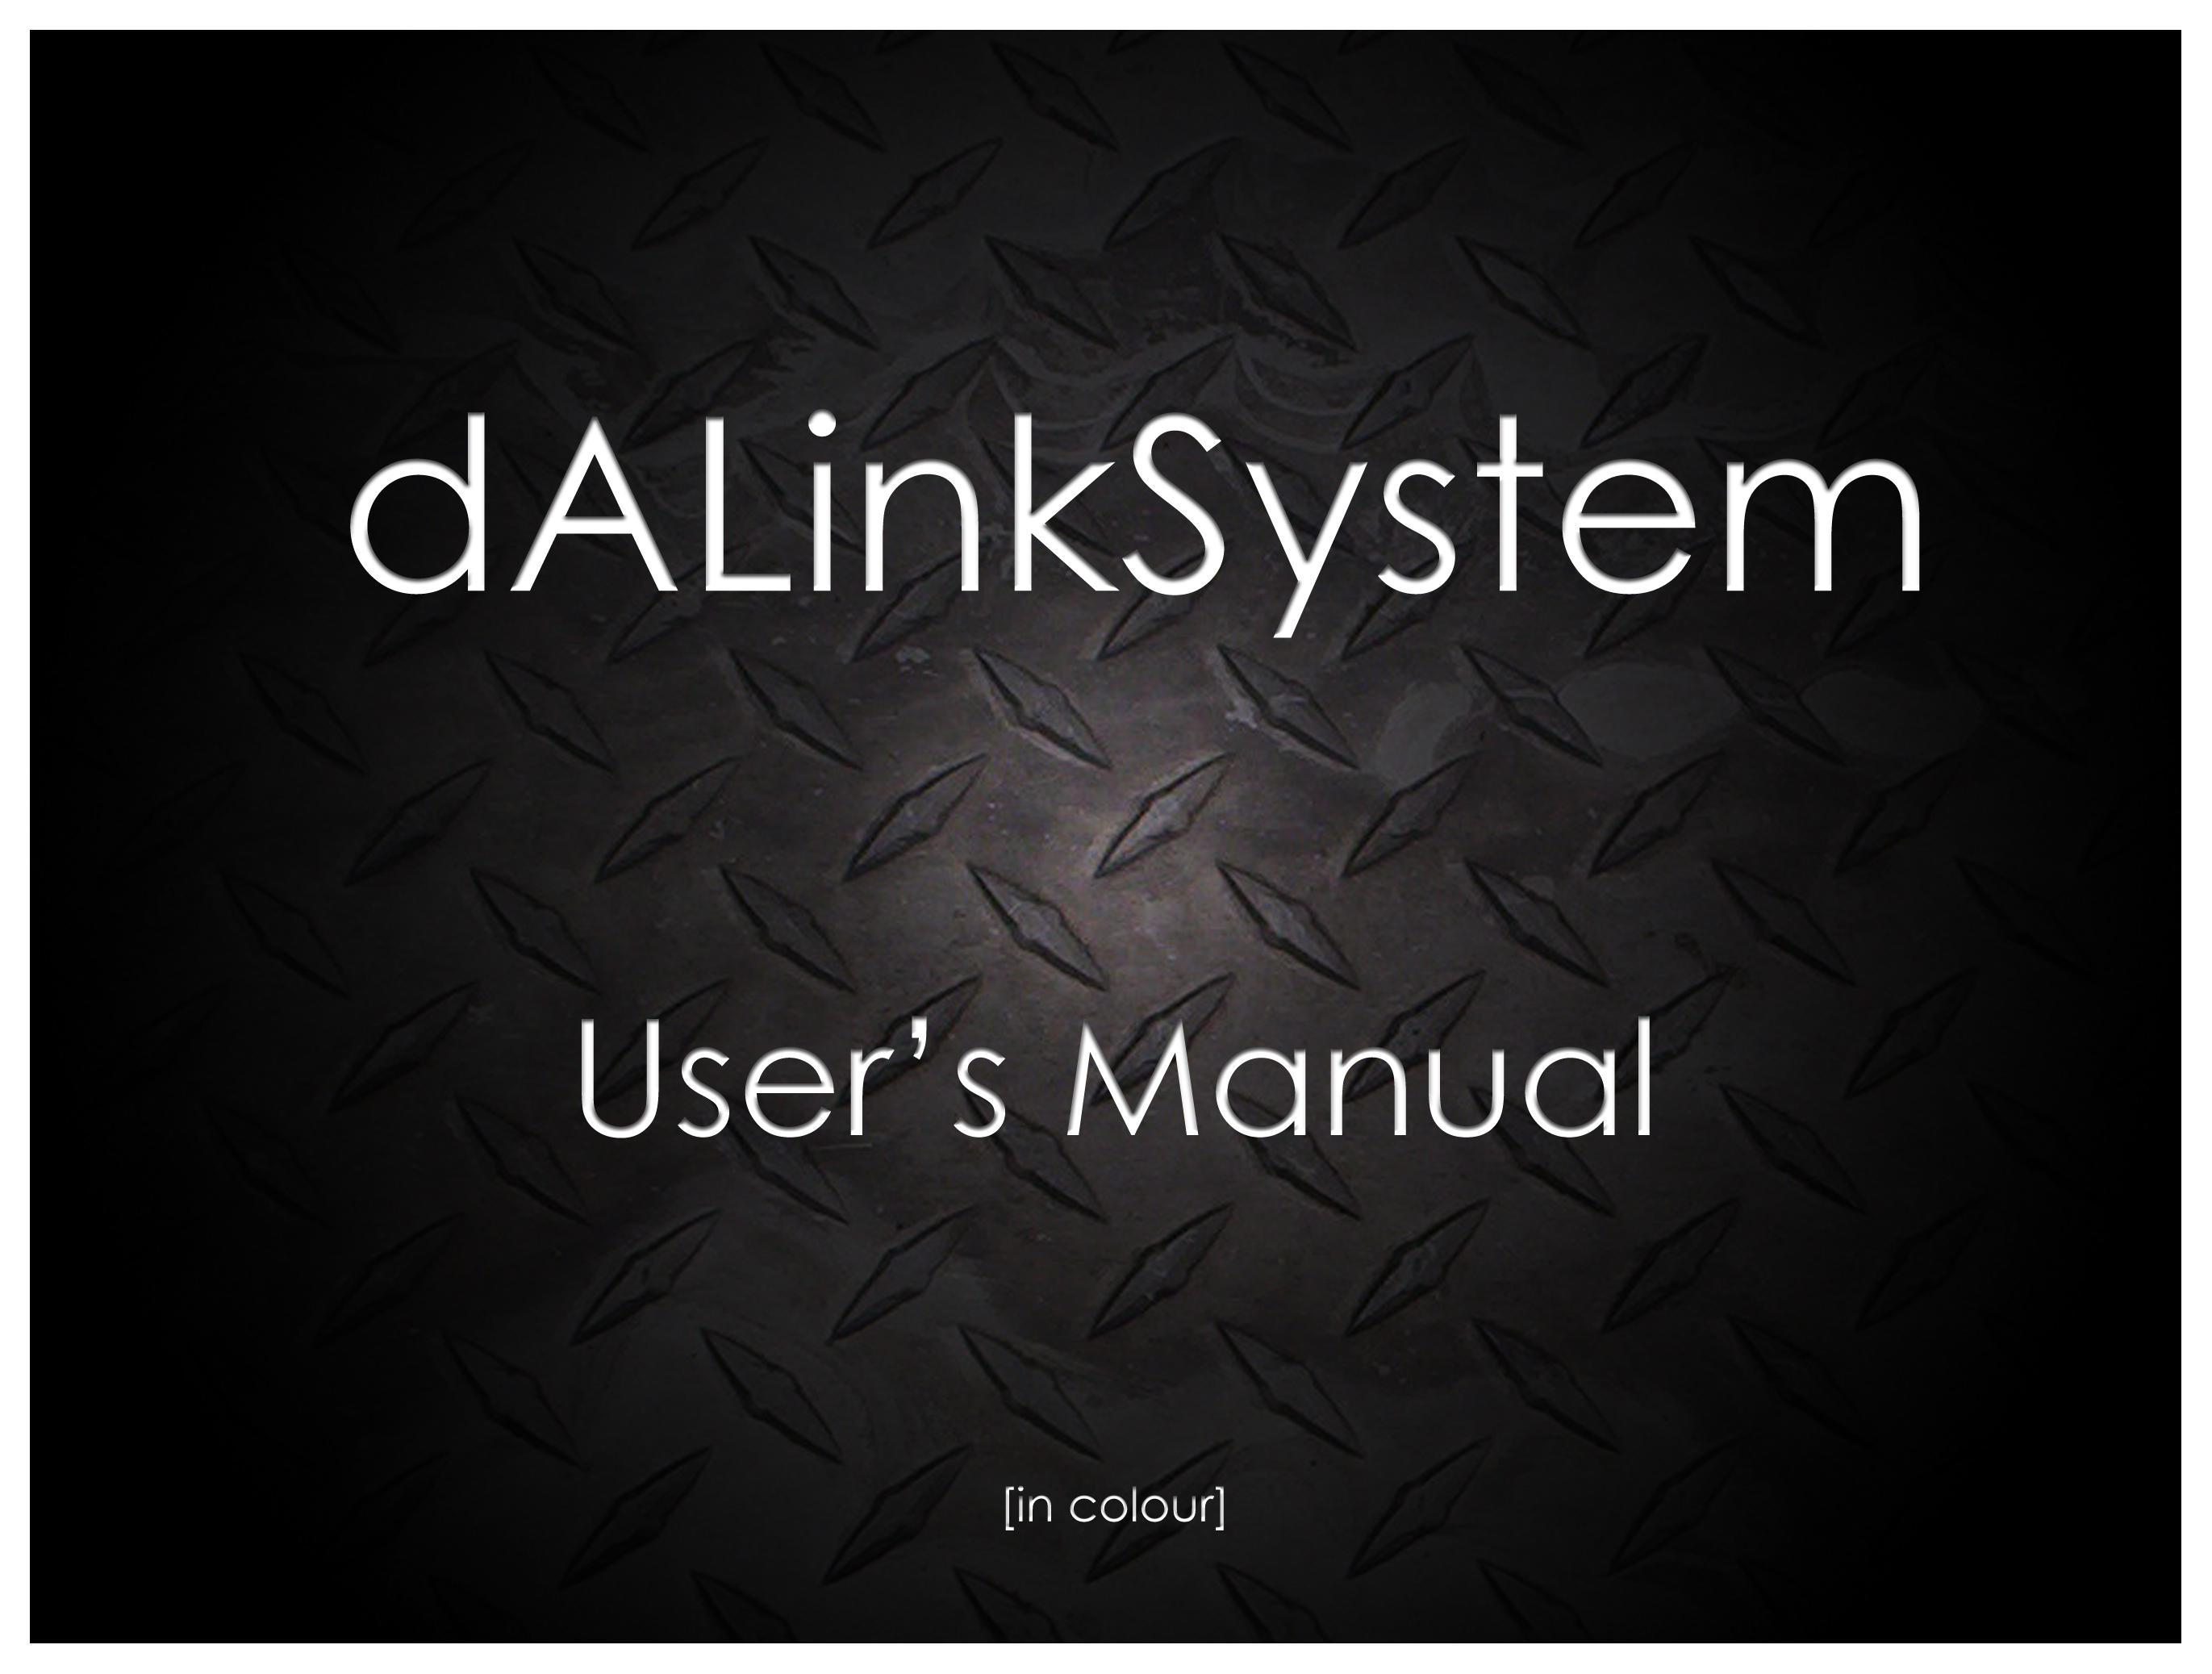 dALinkSystem User's Manual by dALinkSystem